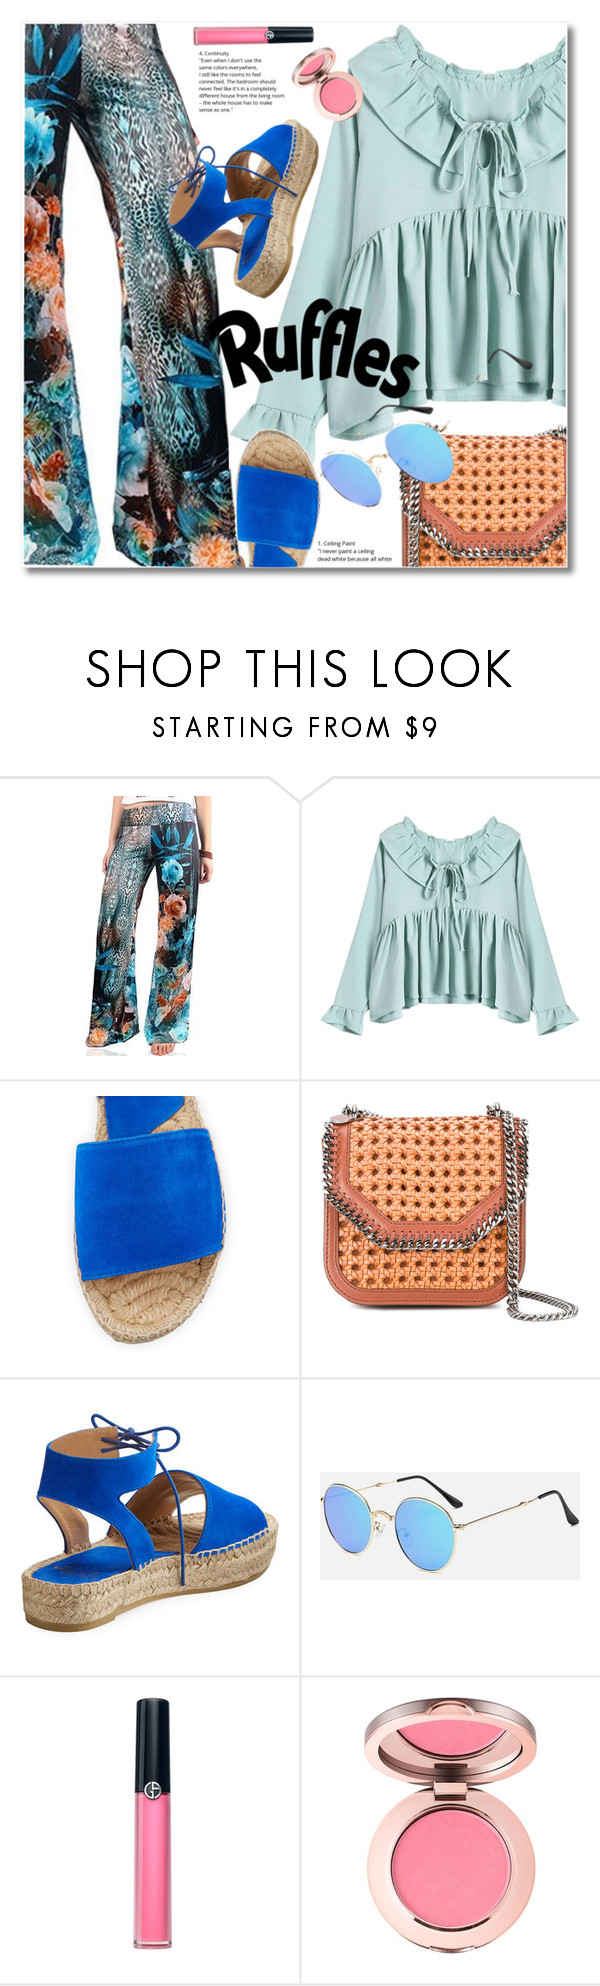 """Add Some Flair: Ruffled Tops"" by svijetlana ❤ liked on Polyvore featuring STELLA McCARTNEY, Armani Beauty, rosegal and ruffledtops"